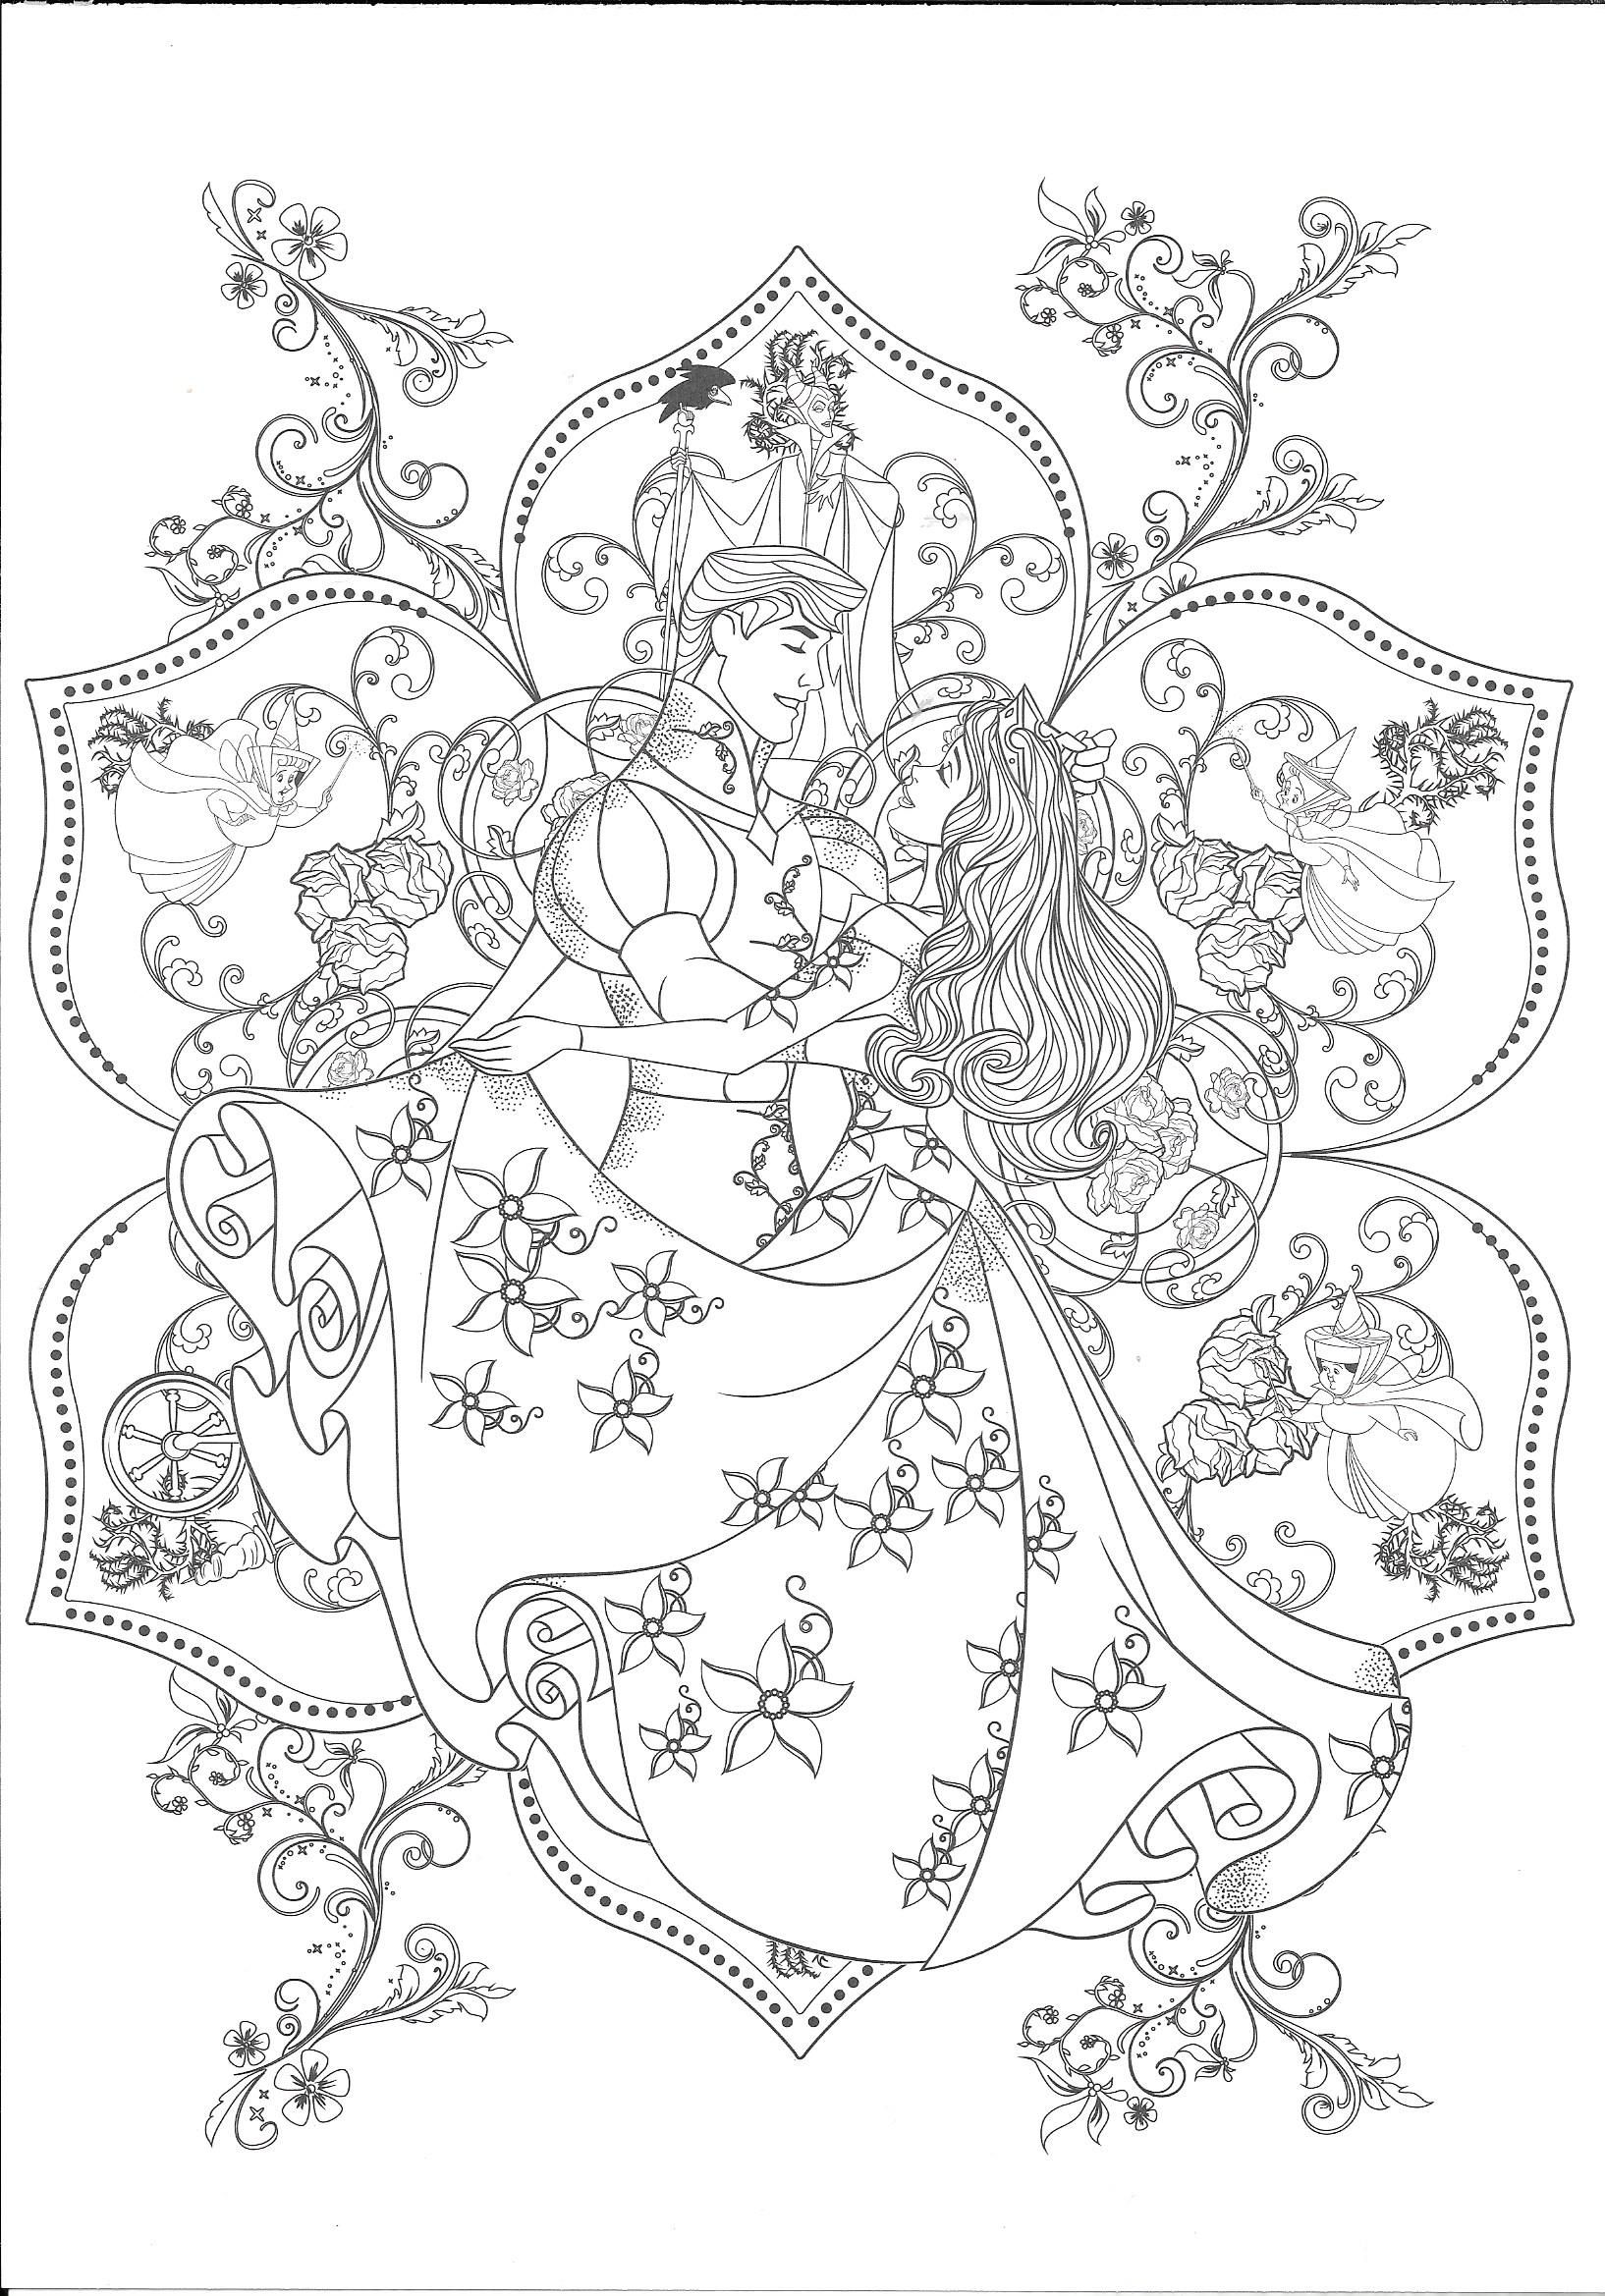 Pin By Play Free Online 32 On Desenhos Princesas Disney Disney Coloring Pages Printables Disney Coloring Pages Sleeping Beauty Coloring Pages